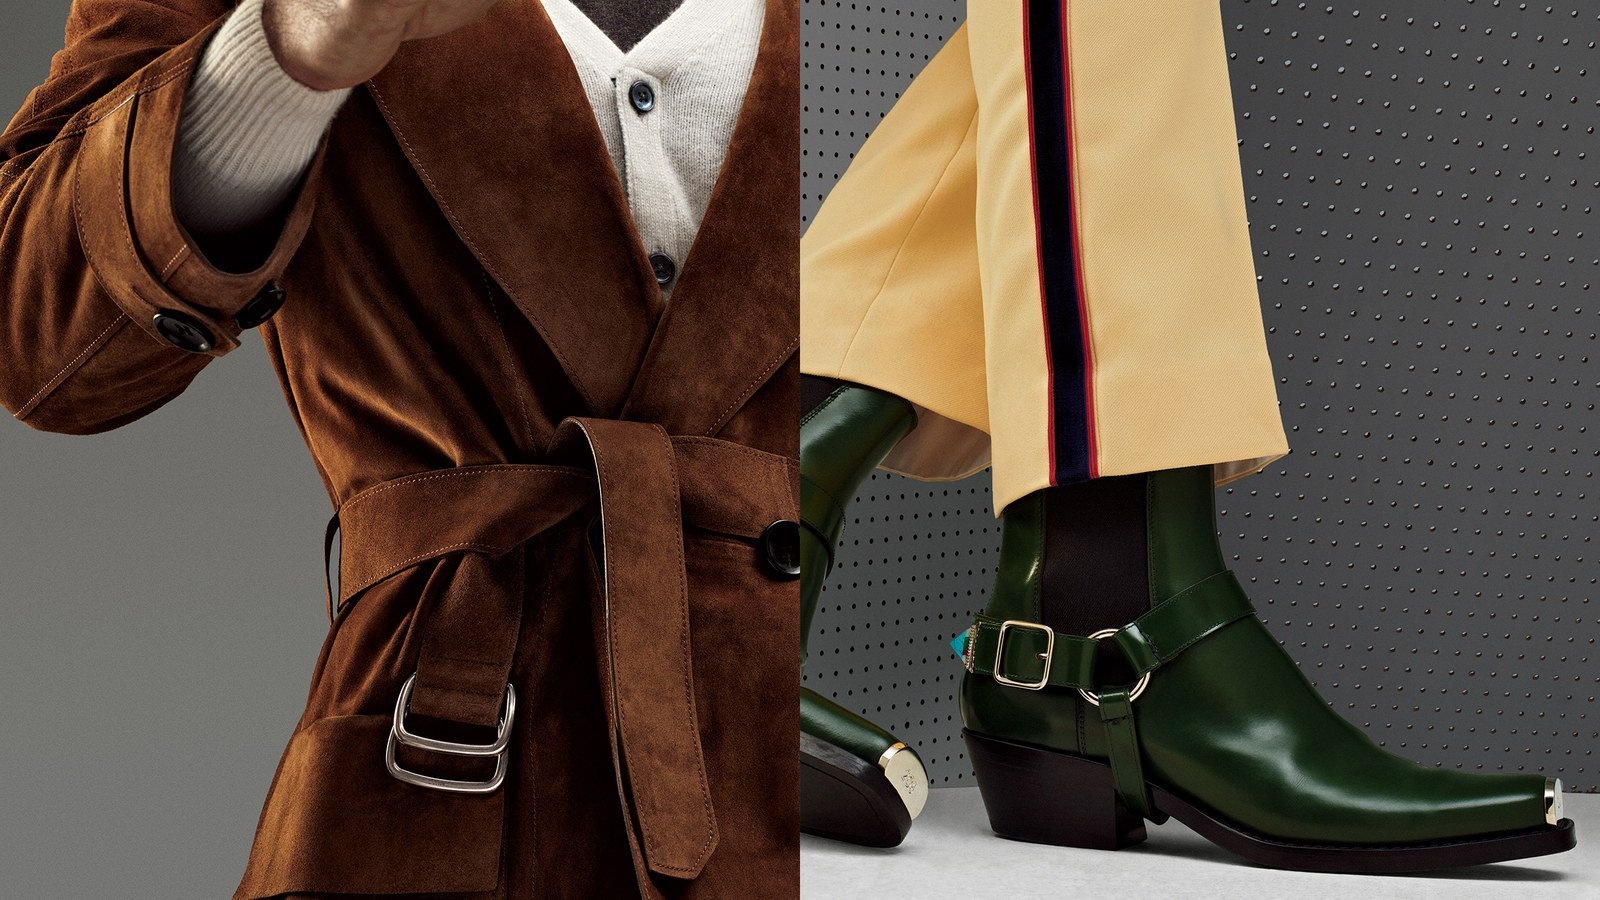 All this season's best coats, shoes, and bags have one thing in common https://t.co/thb2UrU4Td https://t.co/Kc43BloSqn